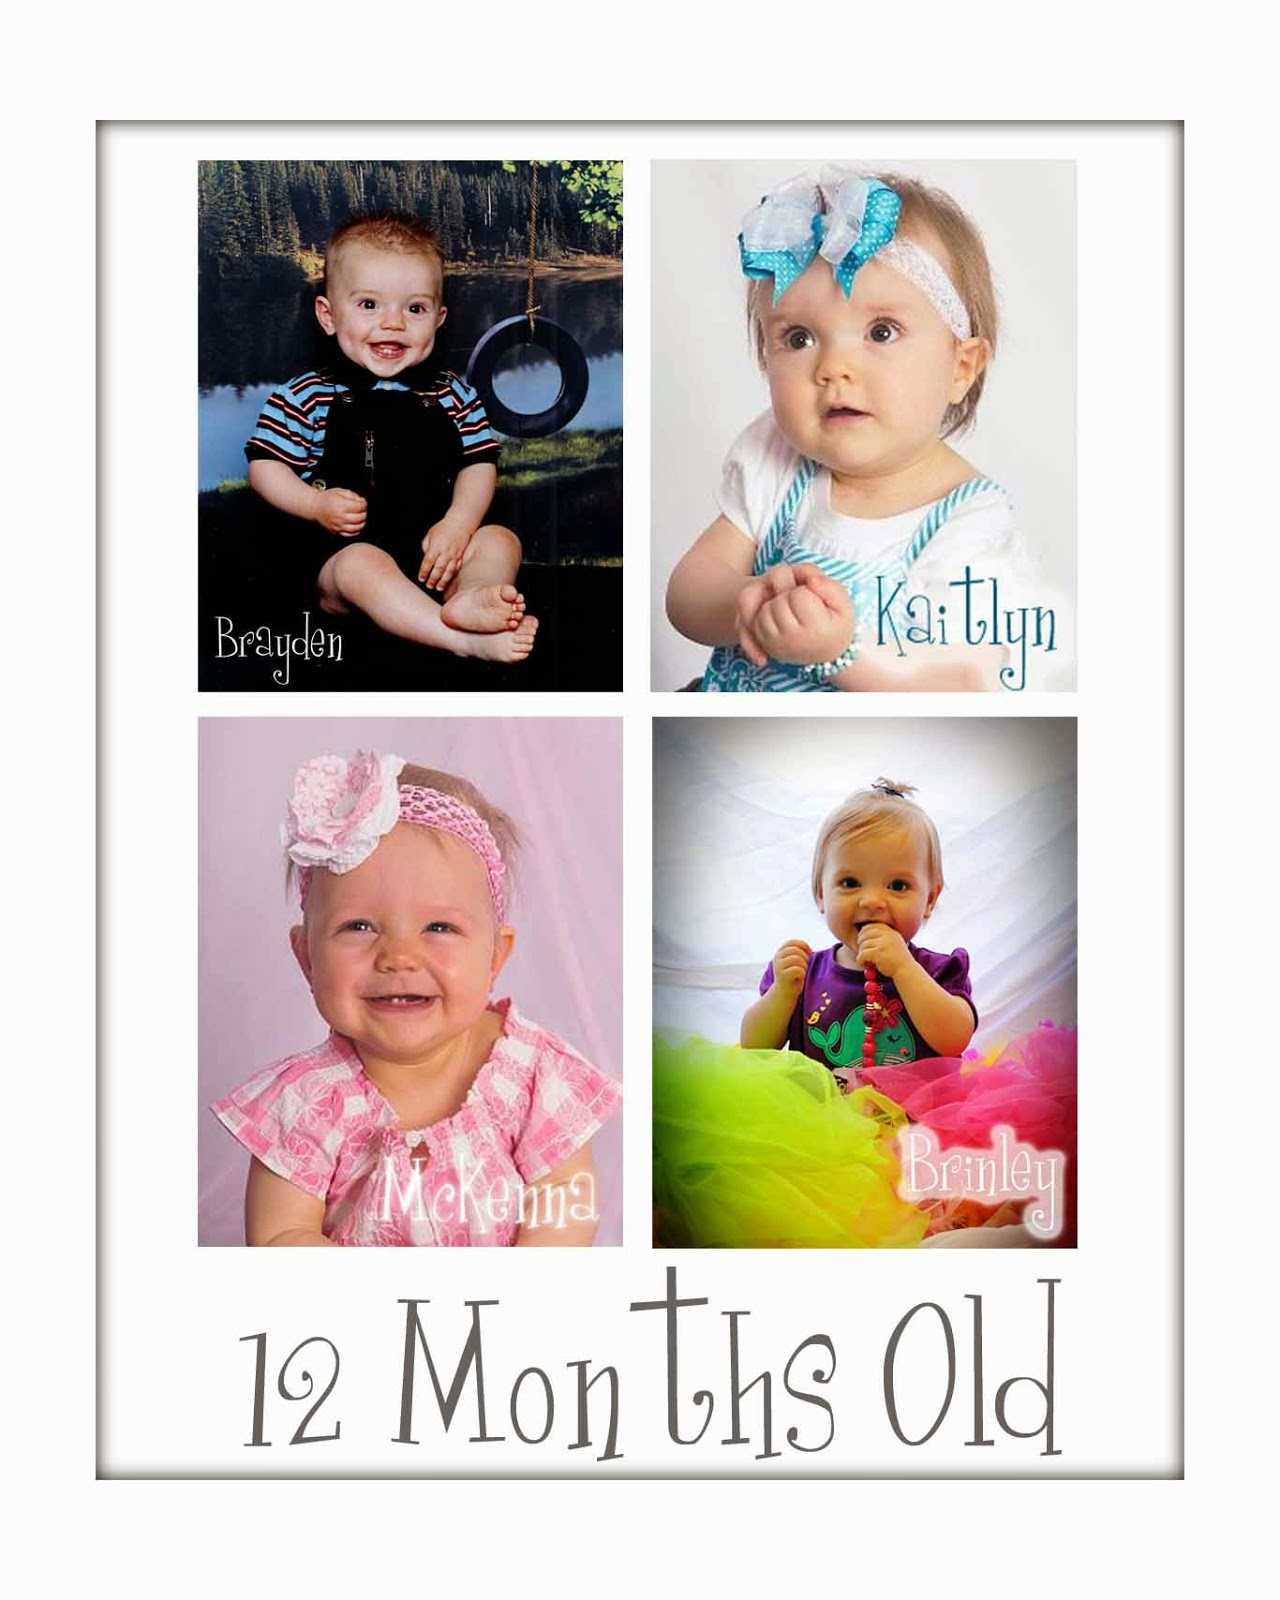 Posts for 9-12 Month Olds. Great reference list for that age.